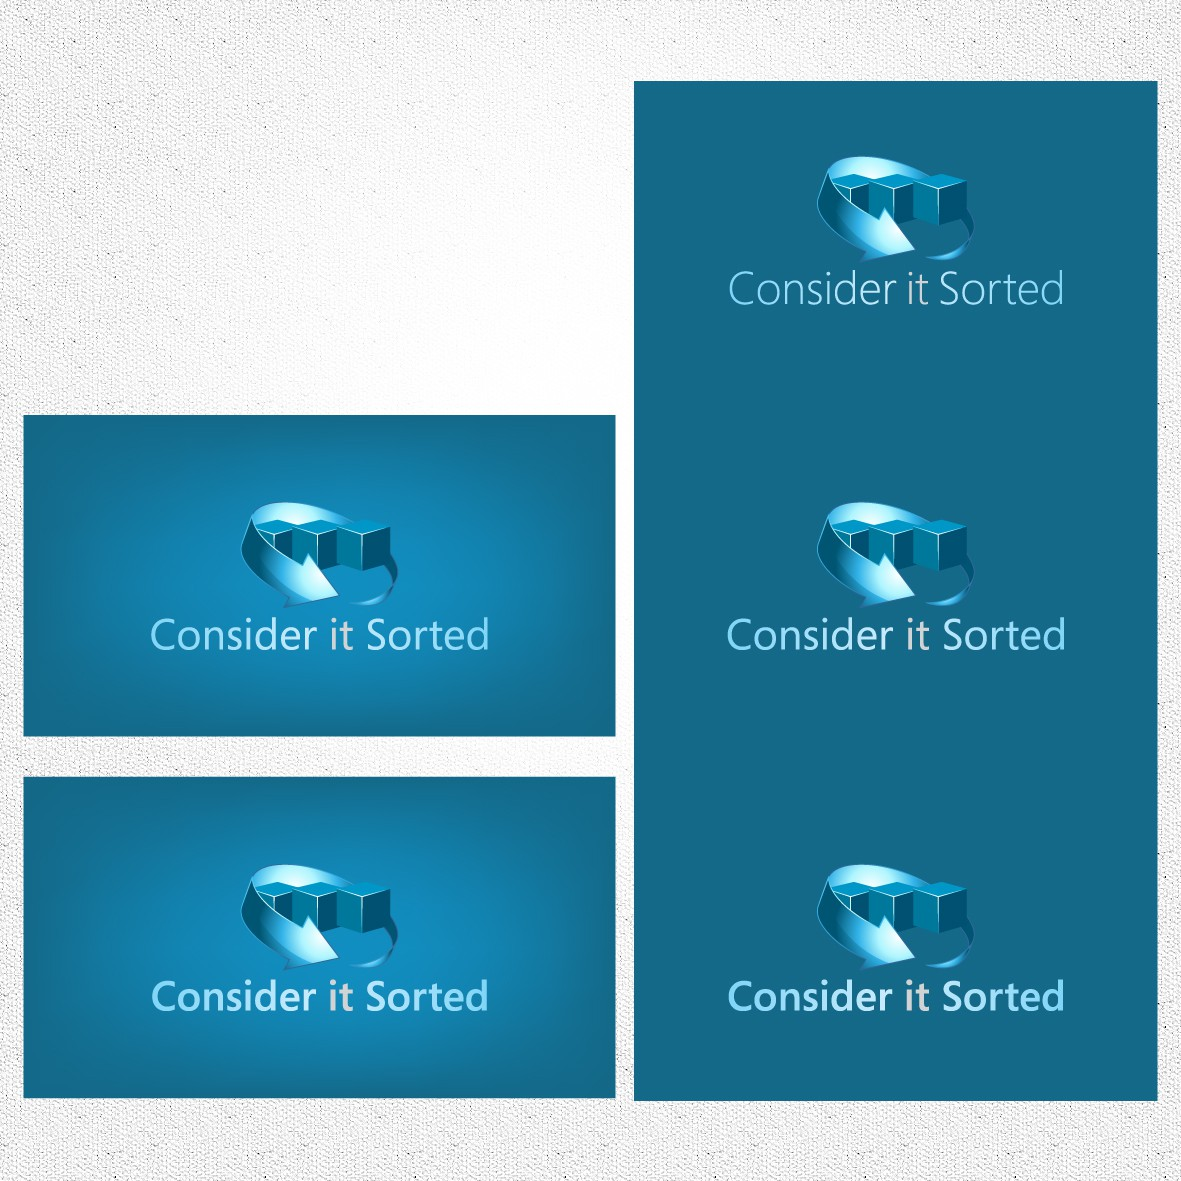 logo for Consider it Sorted